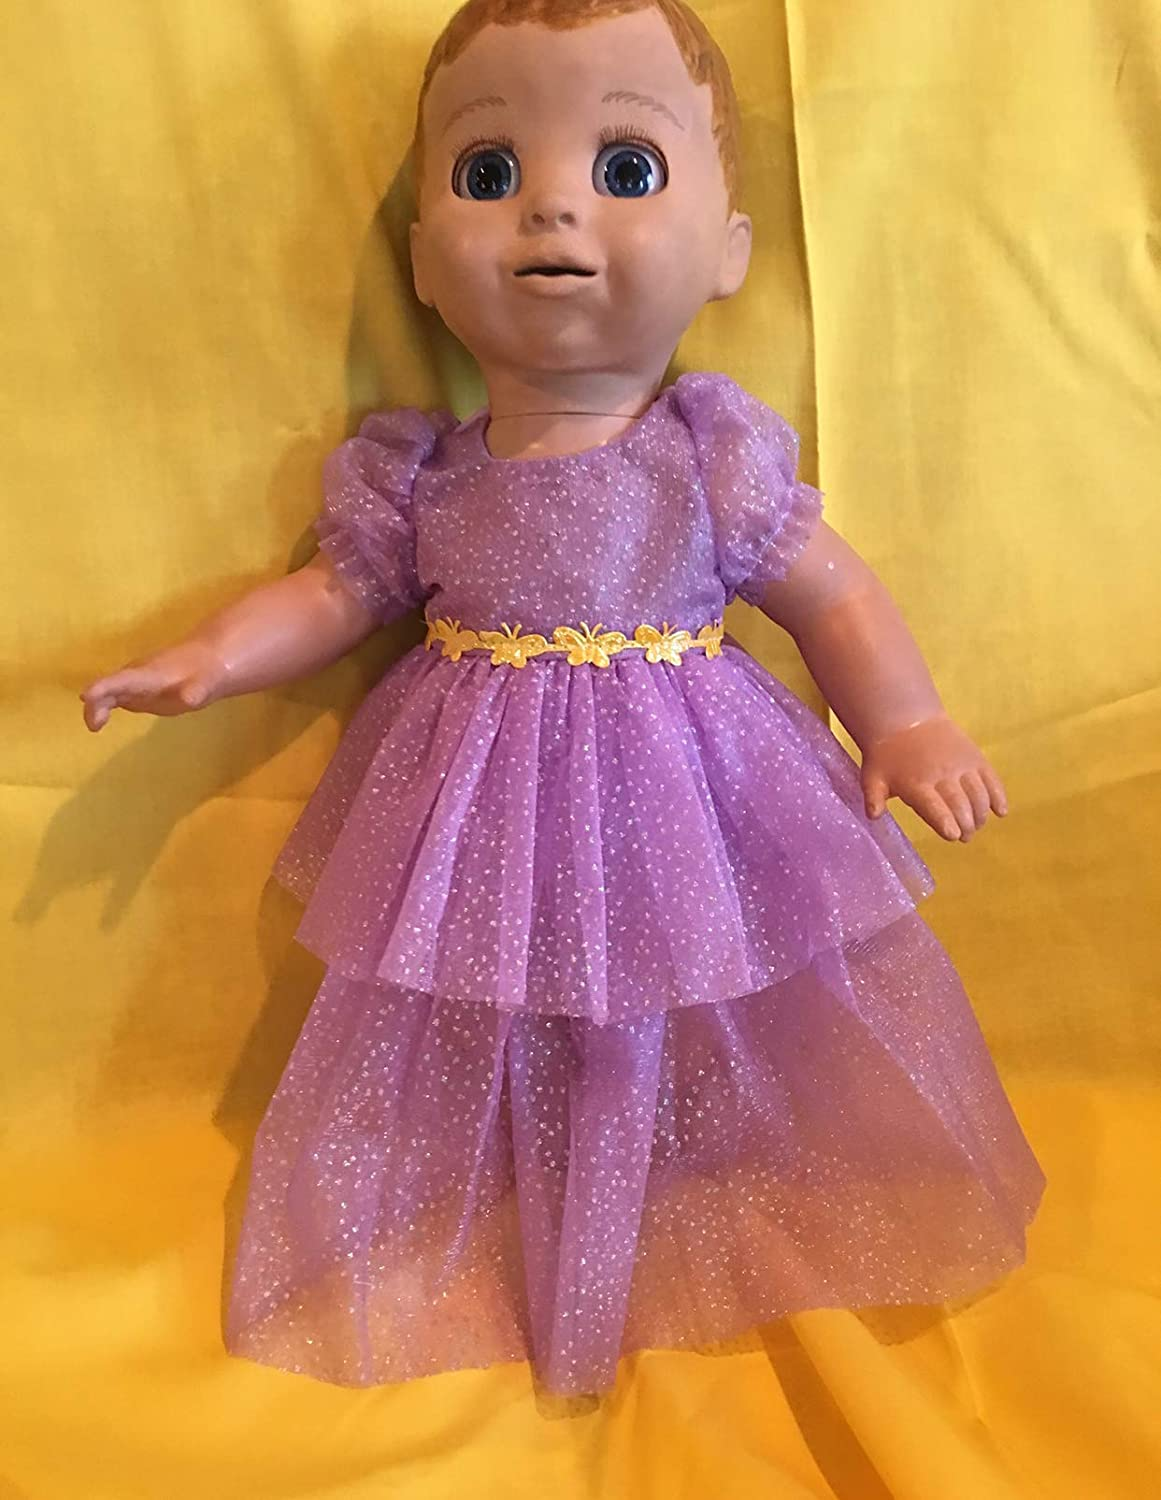 Fits Luvabella Baby Girl Doll Clothes Princess or Fairy Dress Purple Handmade Halloween Costume NO DOLL